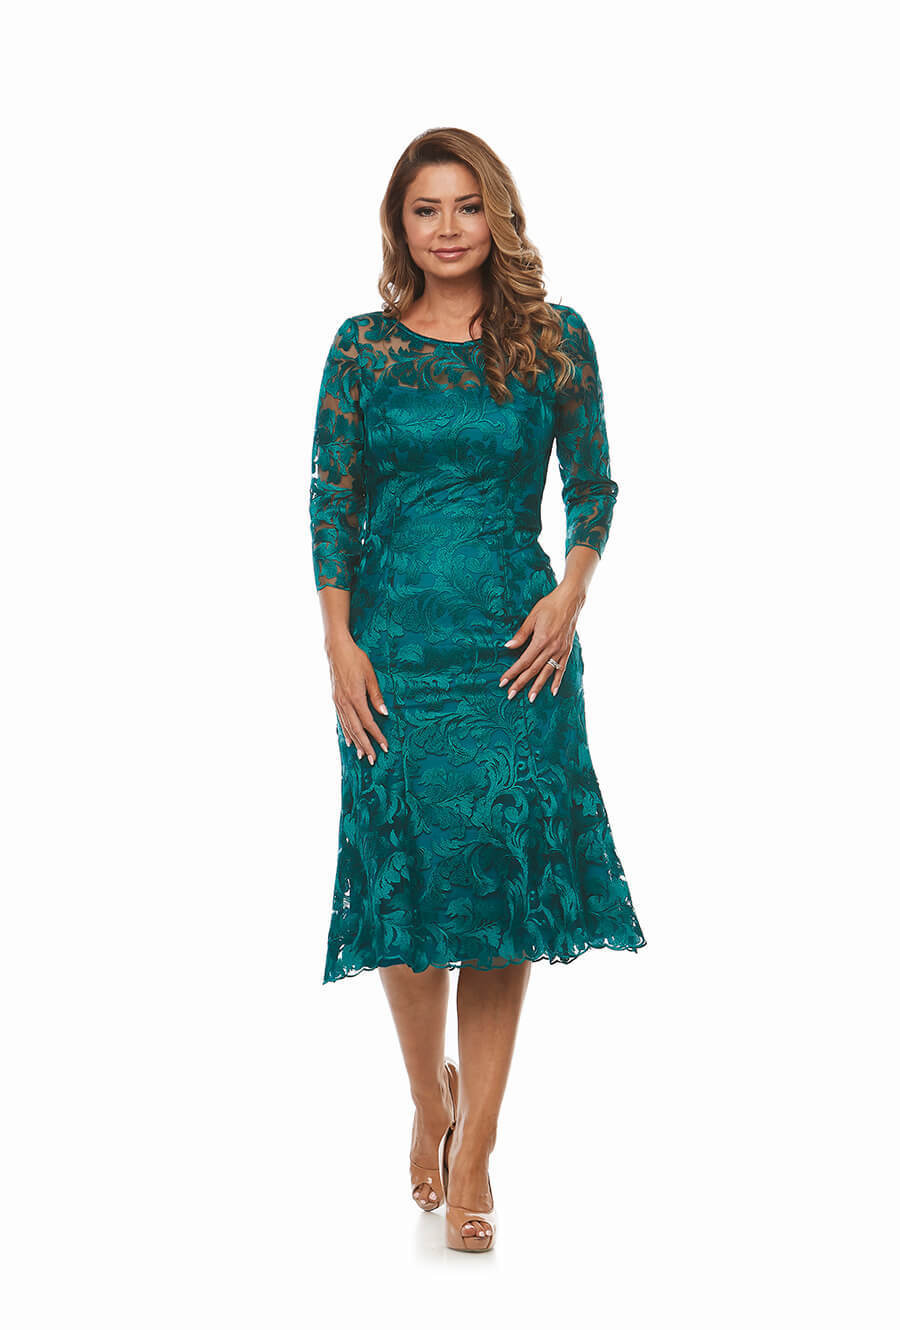 Beautiful Embroidered Lace Dress with 3/4 Sleeve and Fluted Hemline.